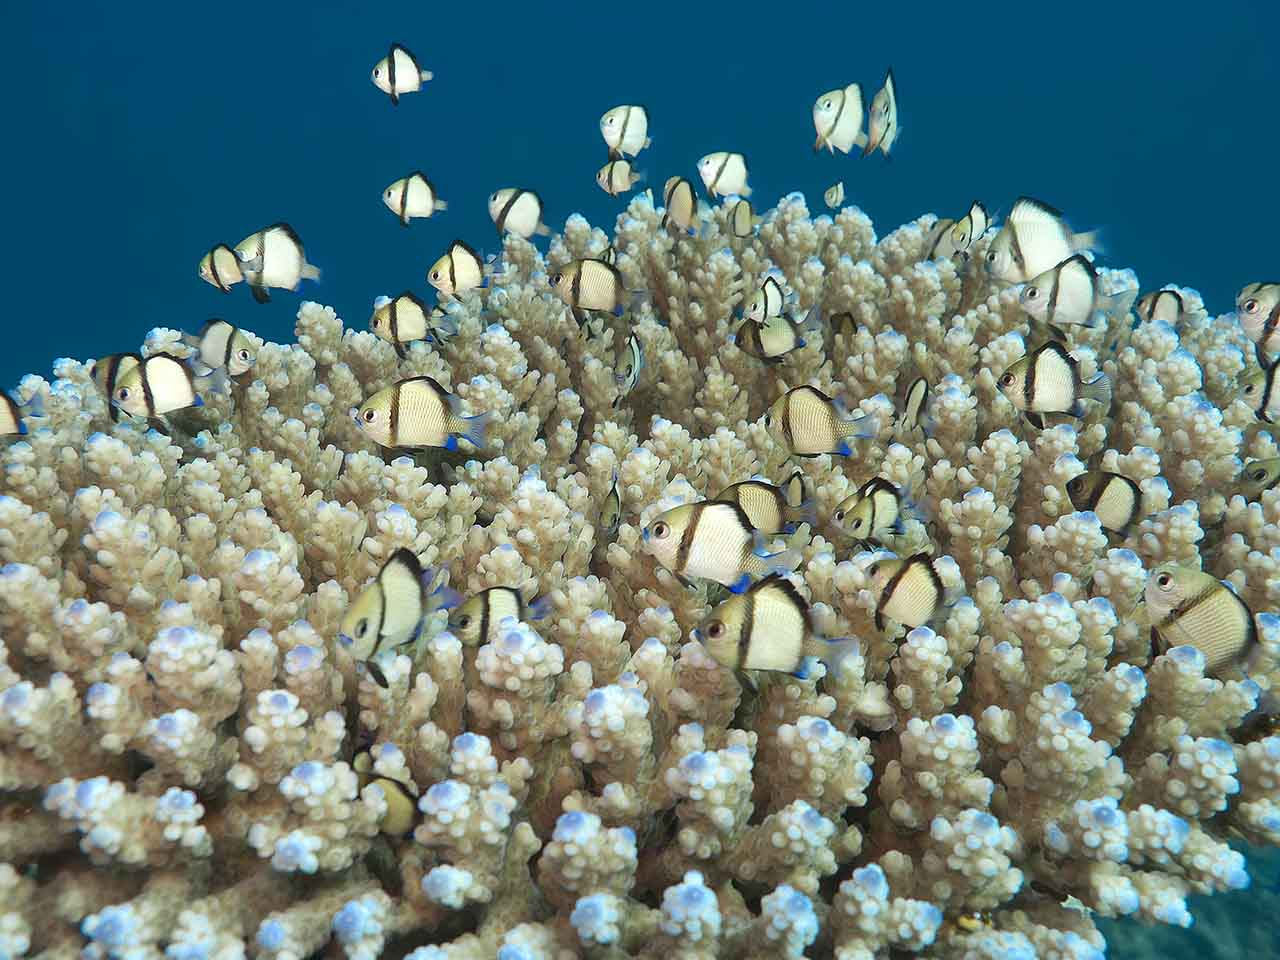 A cloud of Reticulated Dascyllus (Dascyllus reticulatus) hangs over plate coral